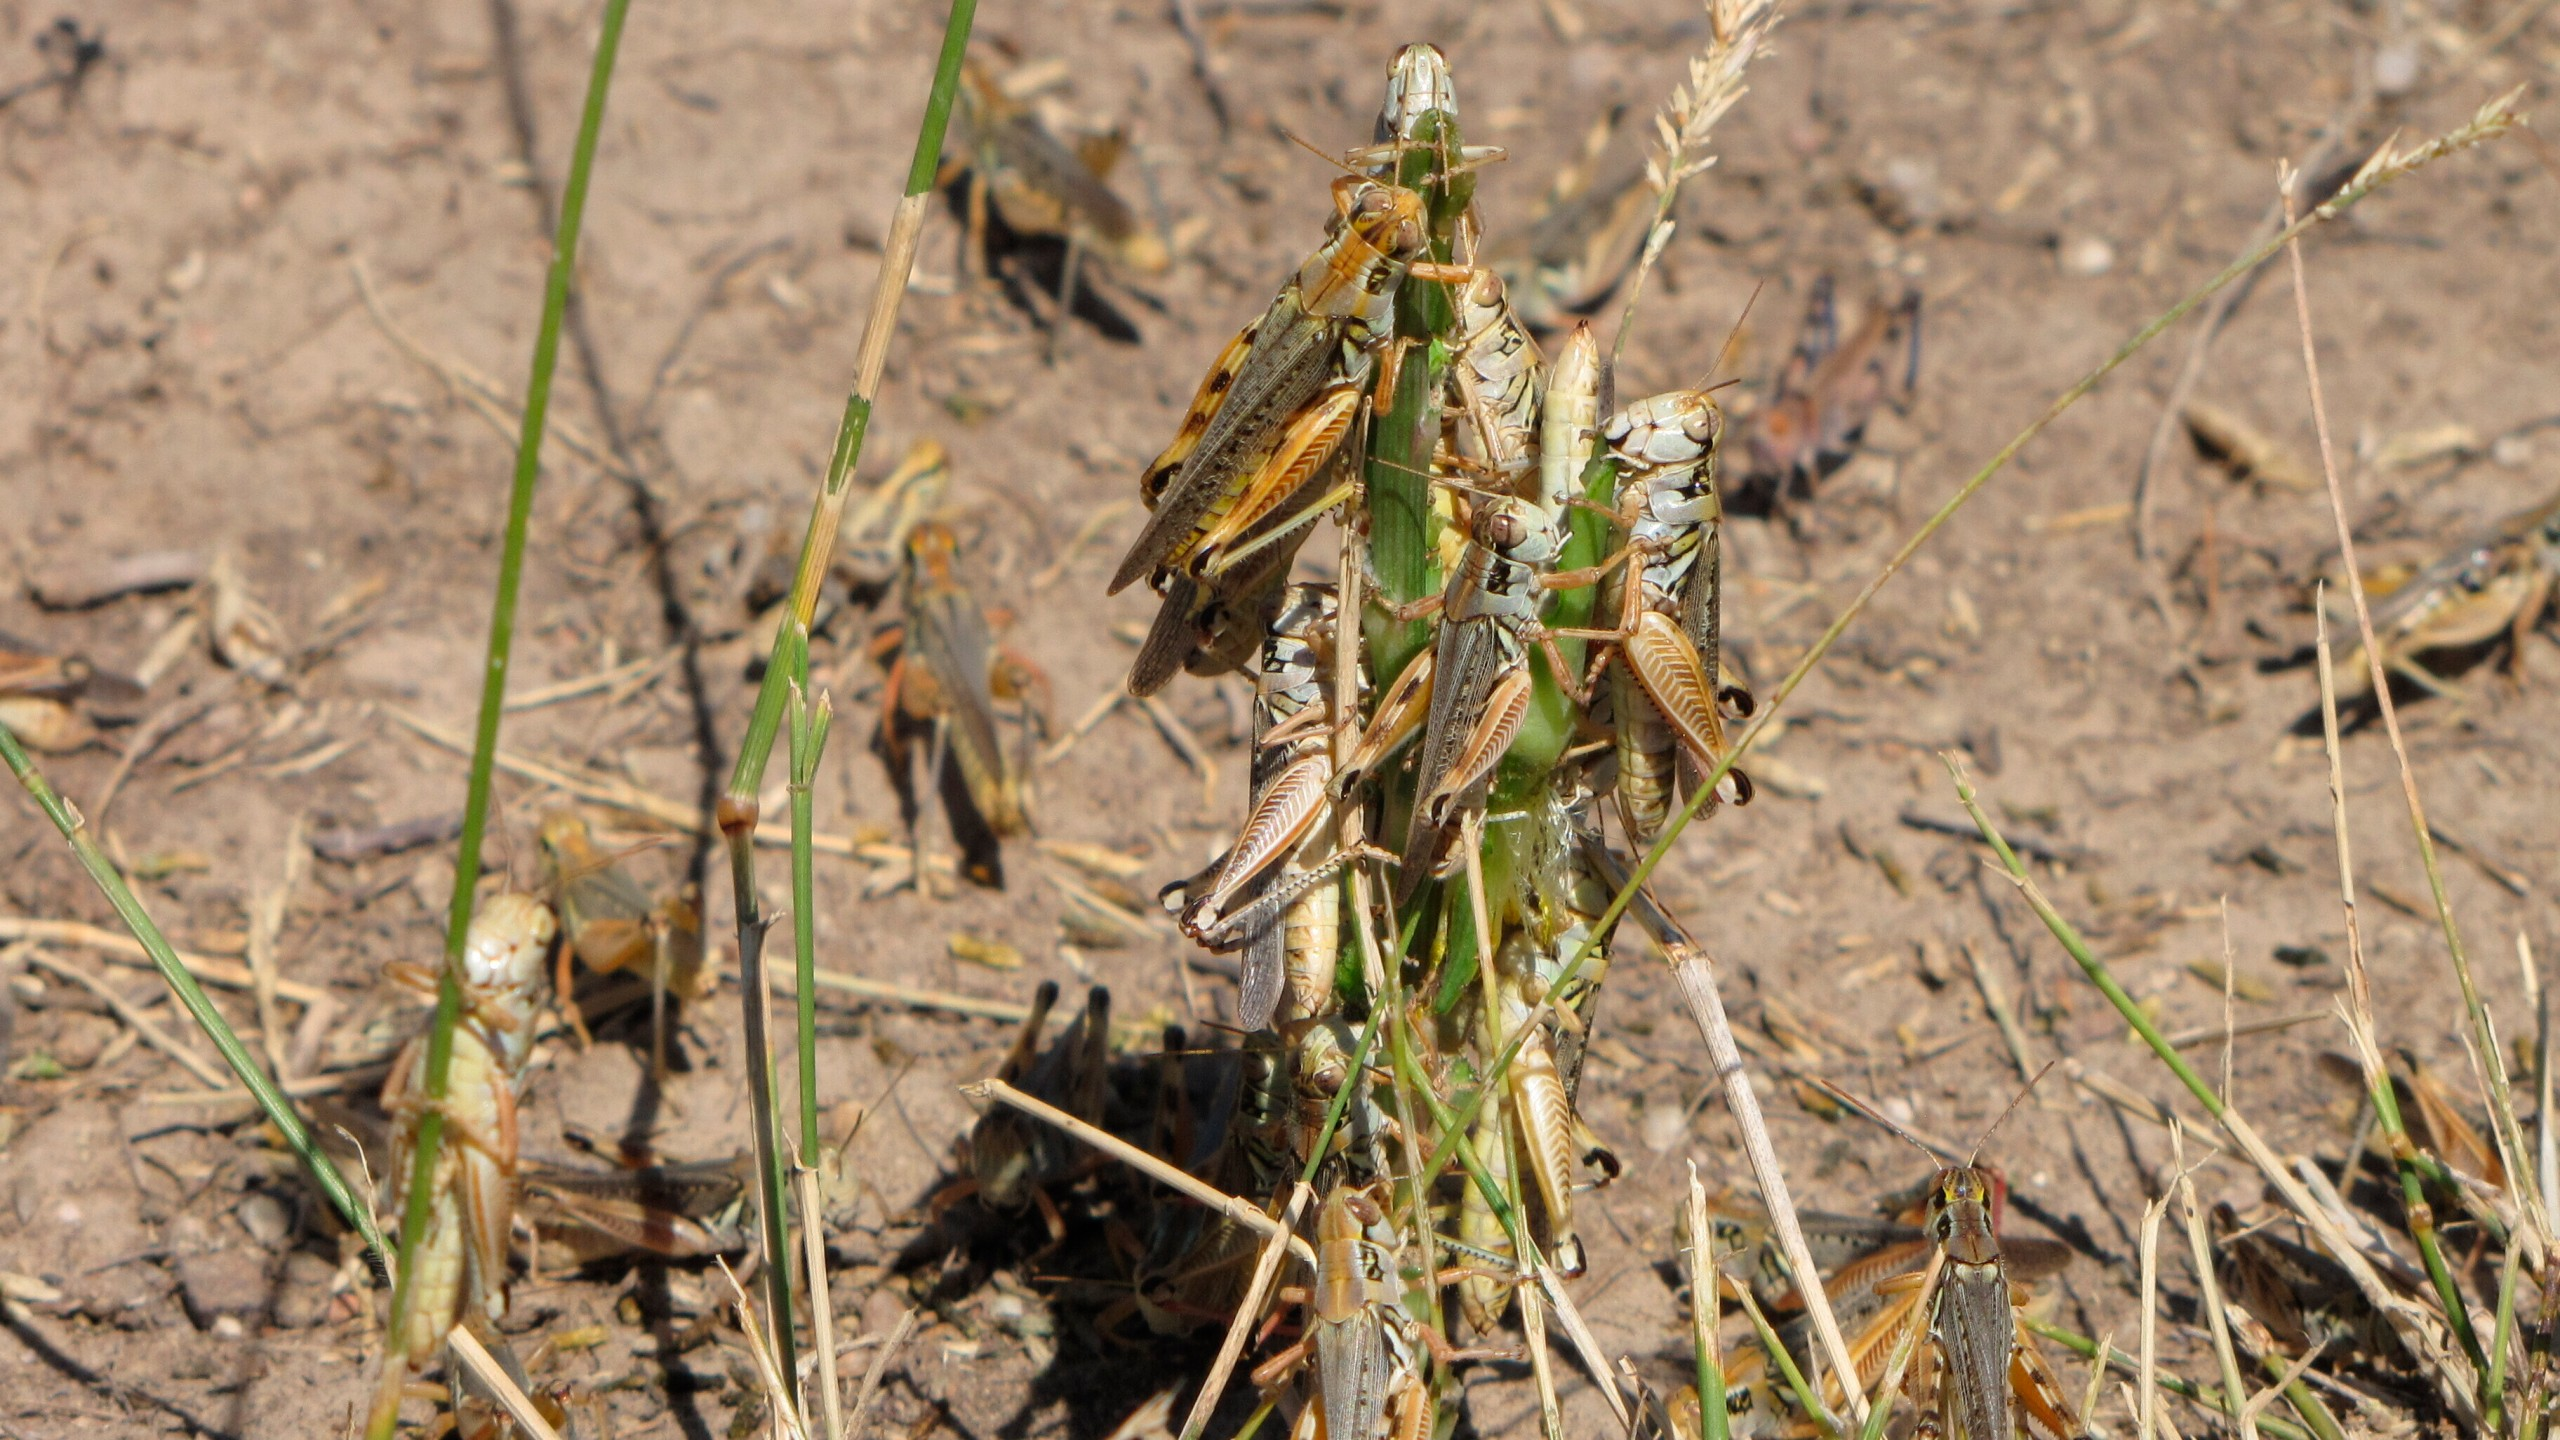 In this photo provided by the U.S. Department of Agriculture's Animal and Plant Health Inspection Service, grasshoppers are seen eating a plant in this undated handout photo from the U.S. Department of Agriculture. Federal agriculture officials are launching what could be the largest grasshopper-killing campaign since the 1980s amid an outbreak of the drought-loving insects that cattle ranchers fear will strip bare public and private rangelands. (U.S. Department of Agriculture's Animal and Plant Health Inspection Service via AP)